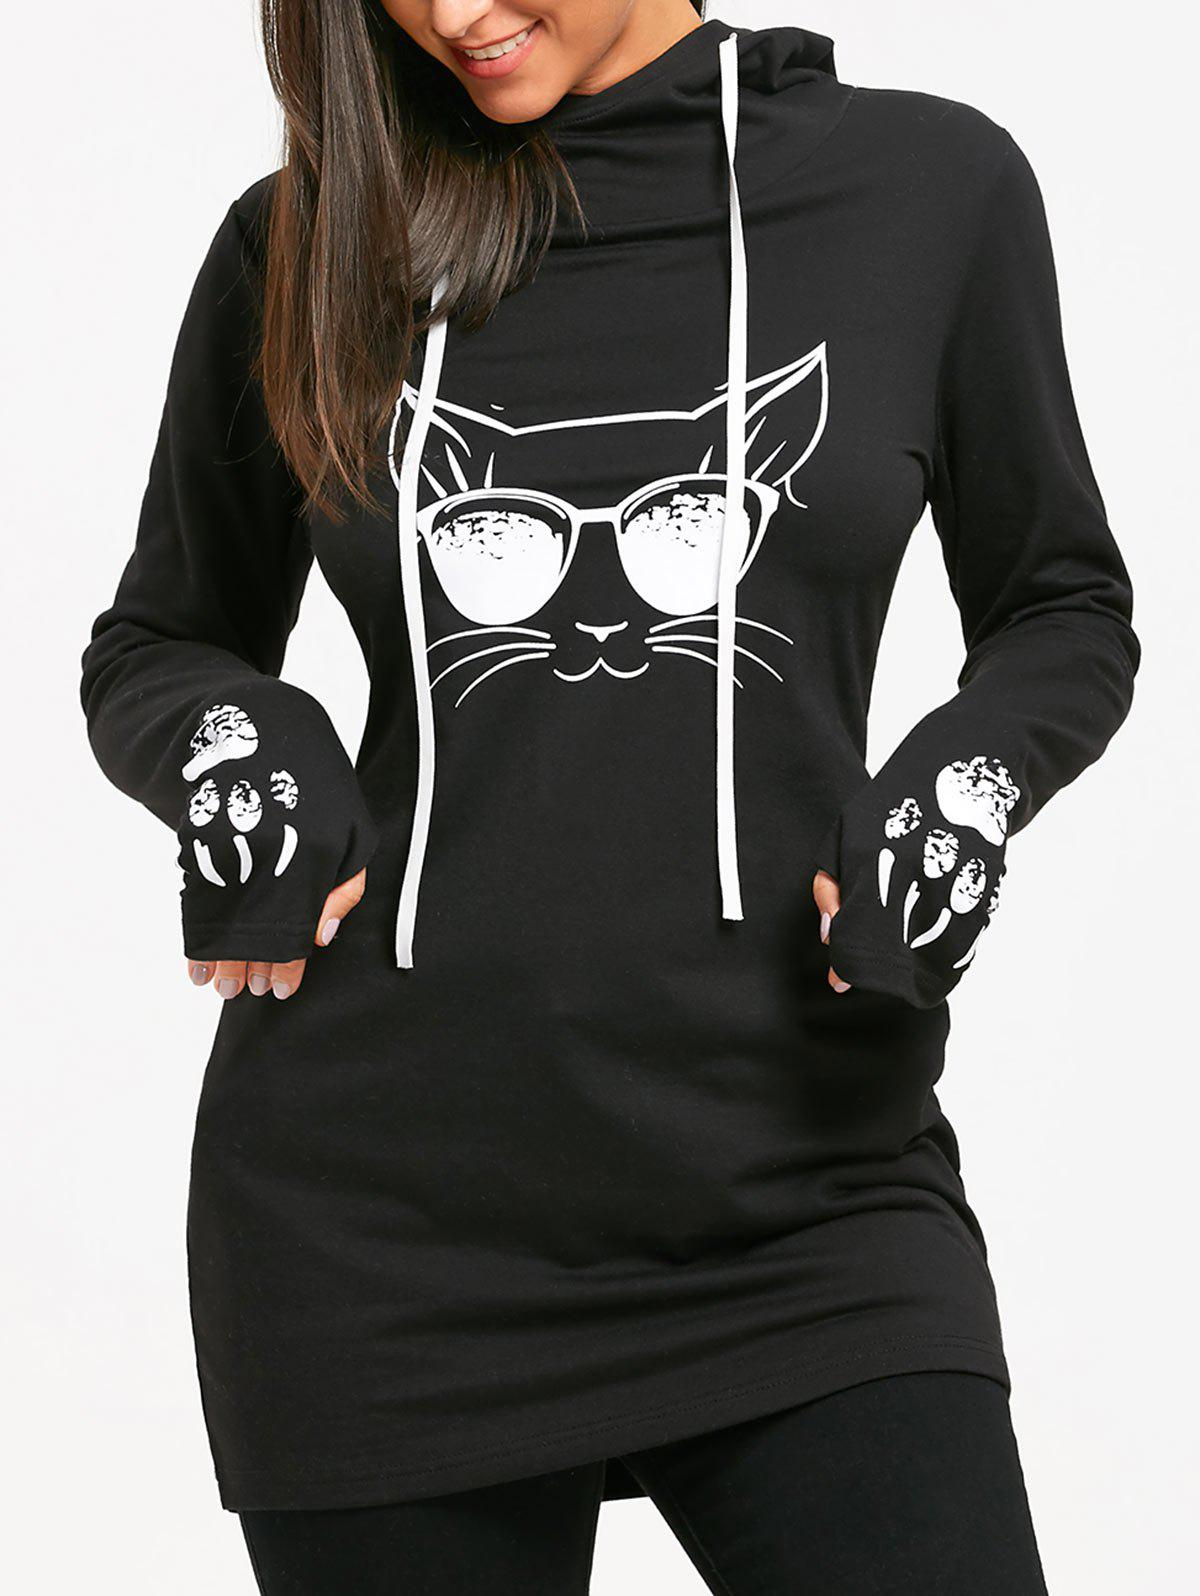 Cat Print Drawstring Tunic HoodieWOMEN<br><br>Size: L; Color: BLACK; Material: Polyester; Shirt Length: Long; Sleeve Length: Full; Style: Casual; Pattern Style: Print; Season: Fall,Spring; Weight: 0.5600kg; Package Contents: 1 x Hoodie;